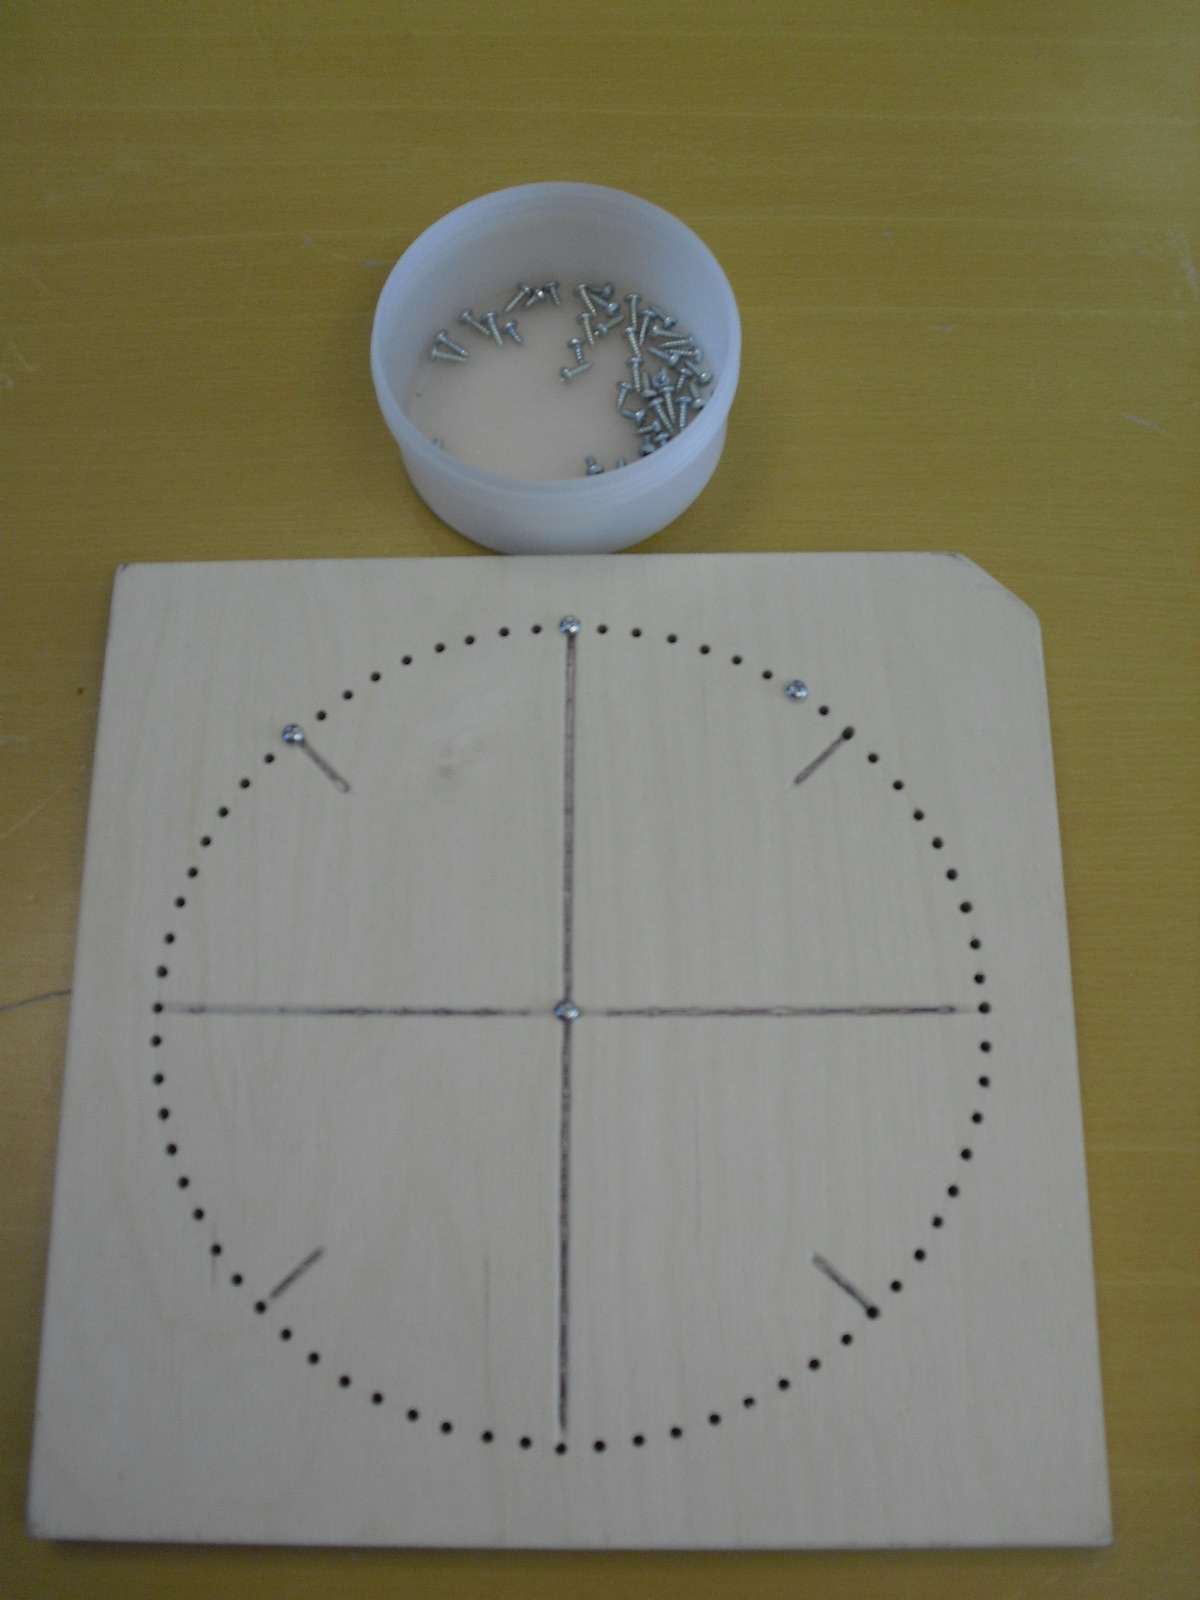 Homemade wooden board encarved with goniometric circle